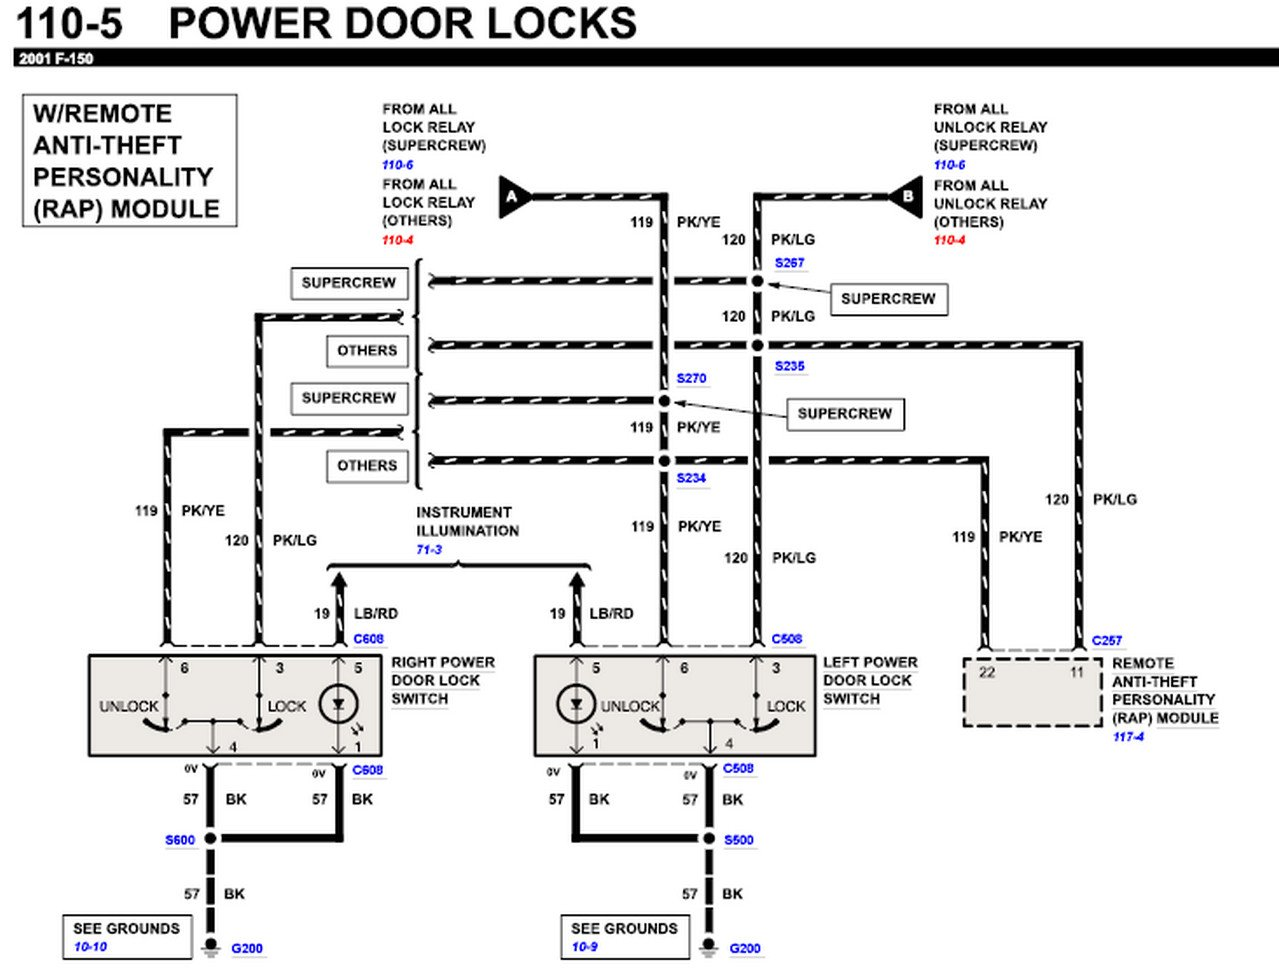 2006 E350 - Help bypass / delete power door lock switch | Ford Automobiles | Ford F350 Door Lock Wiring Diagram |  | Ford Forums Online